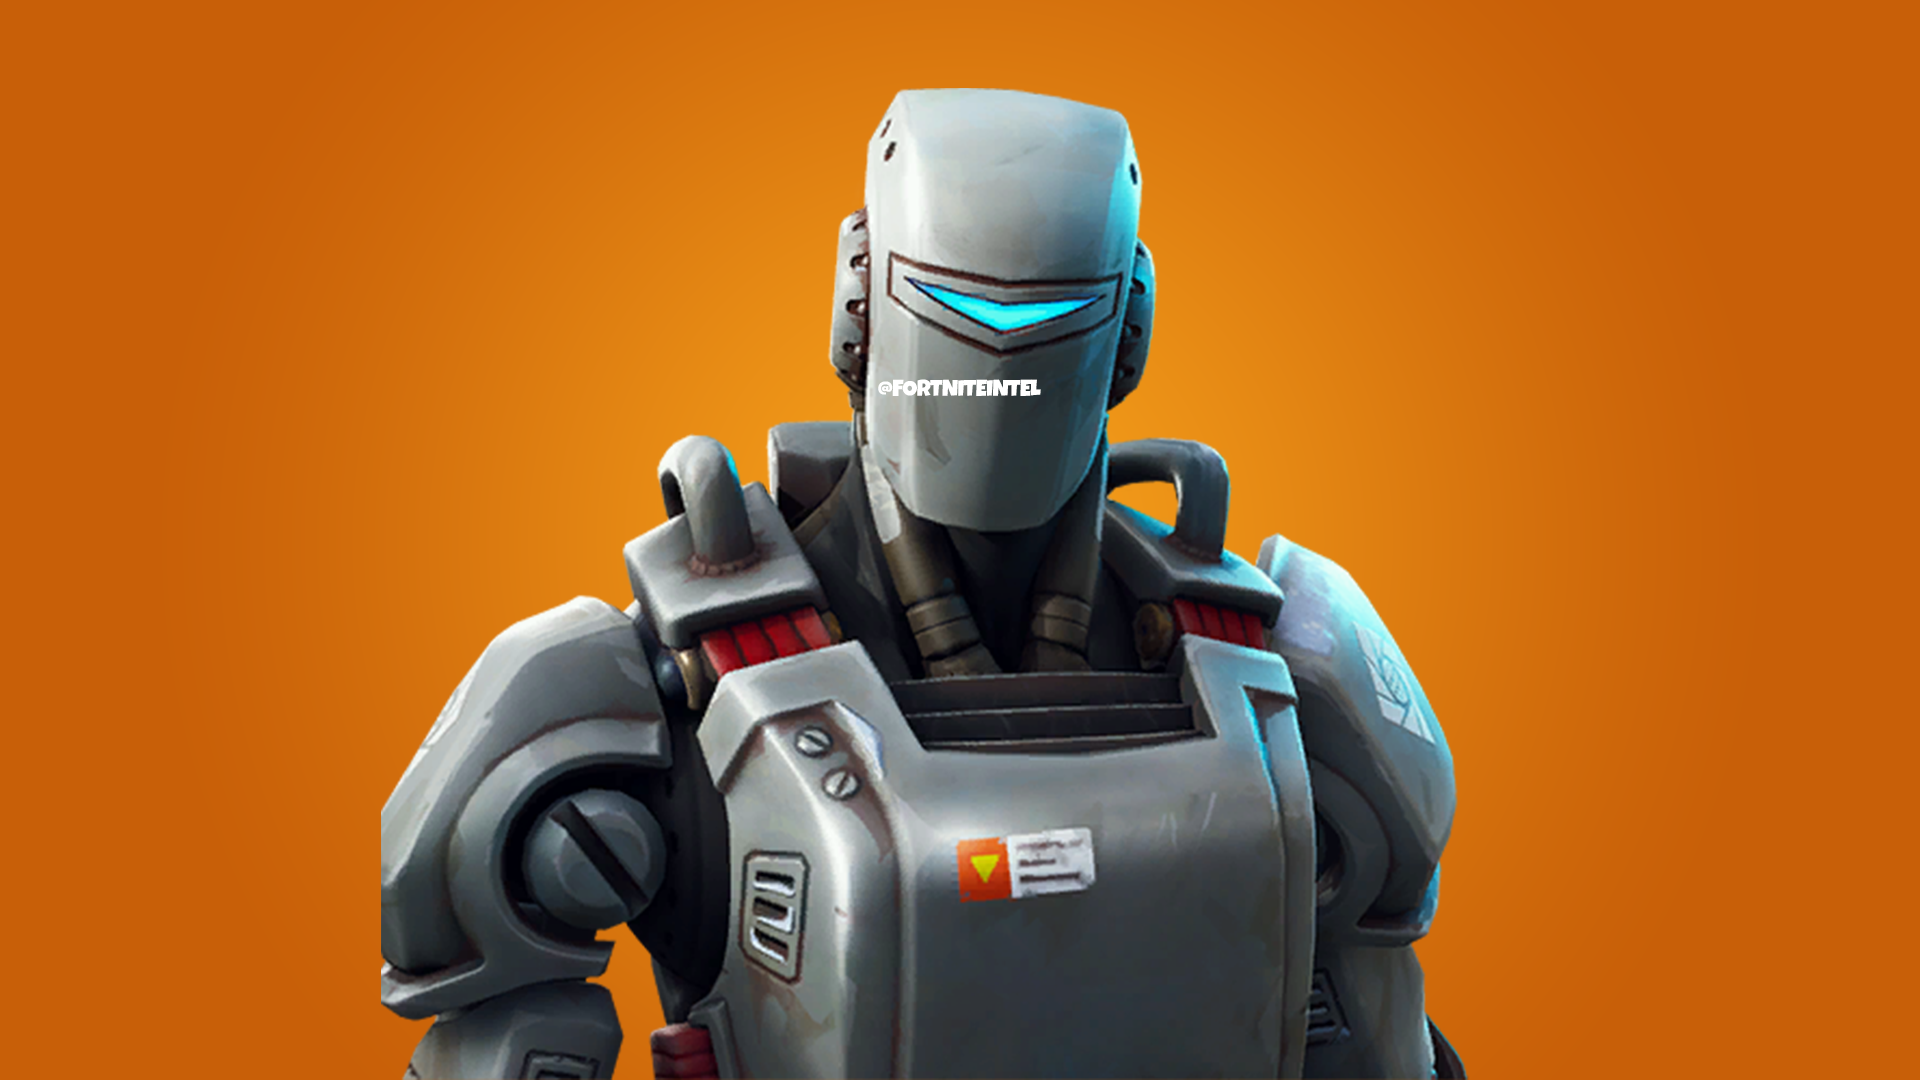 hunting party skin - hunting party skin leaked fortnite